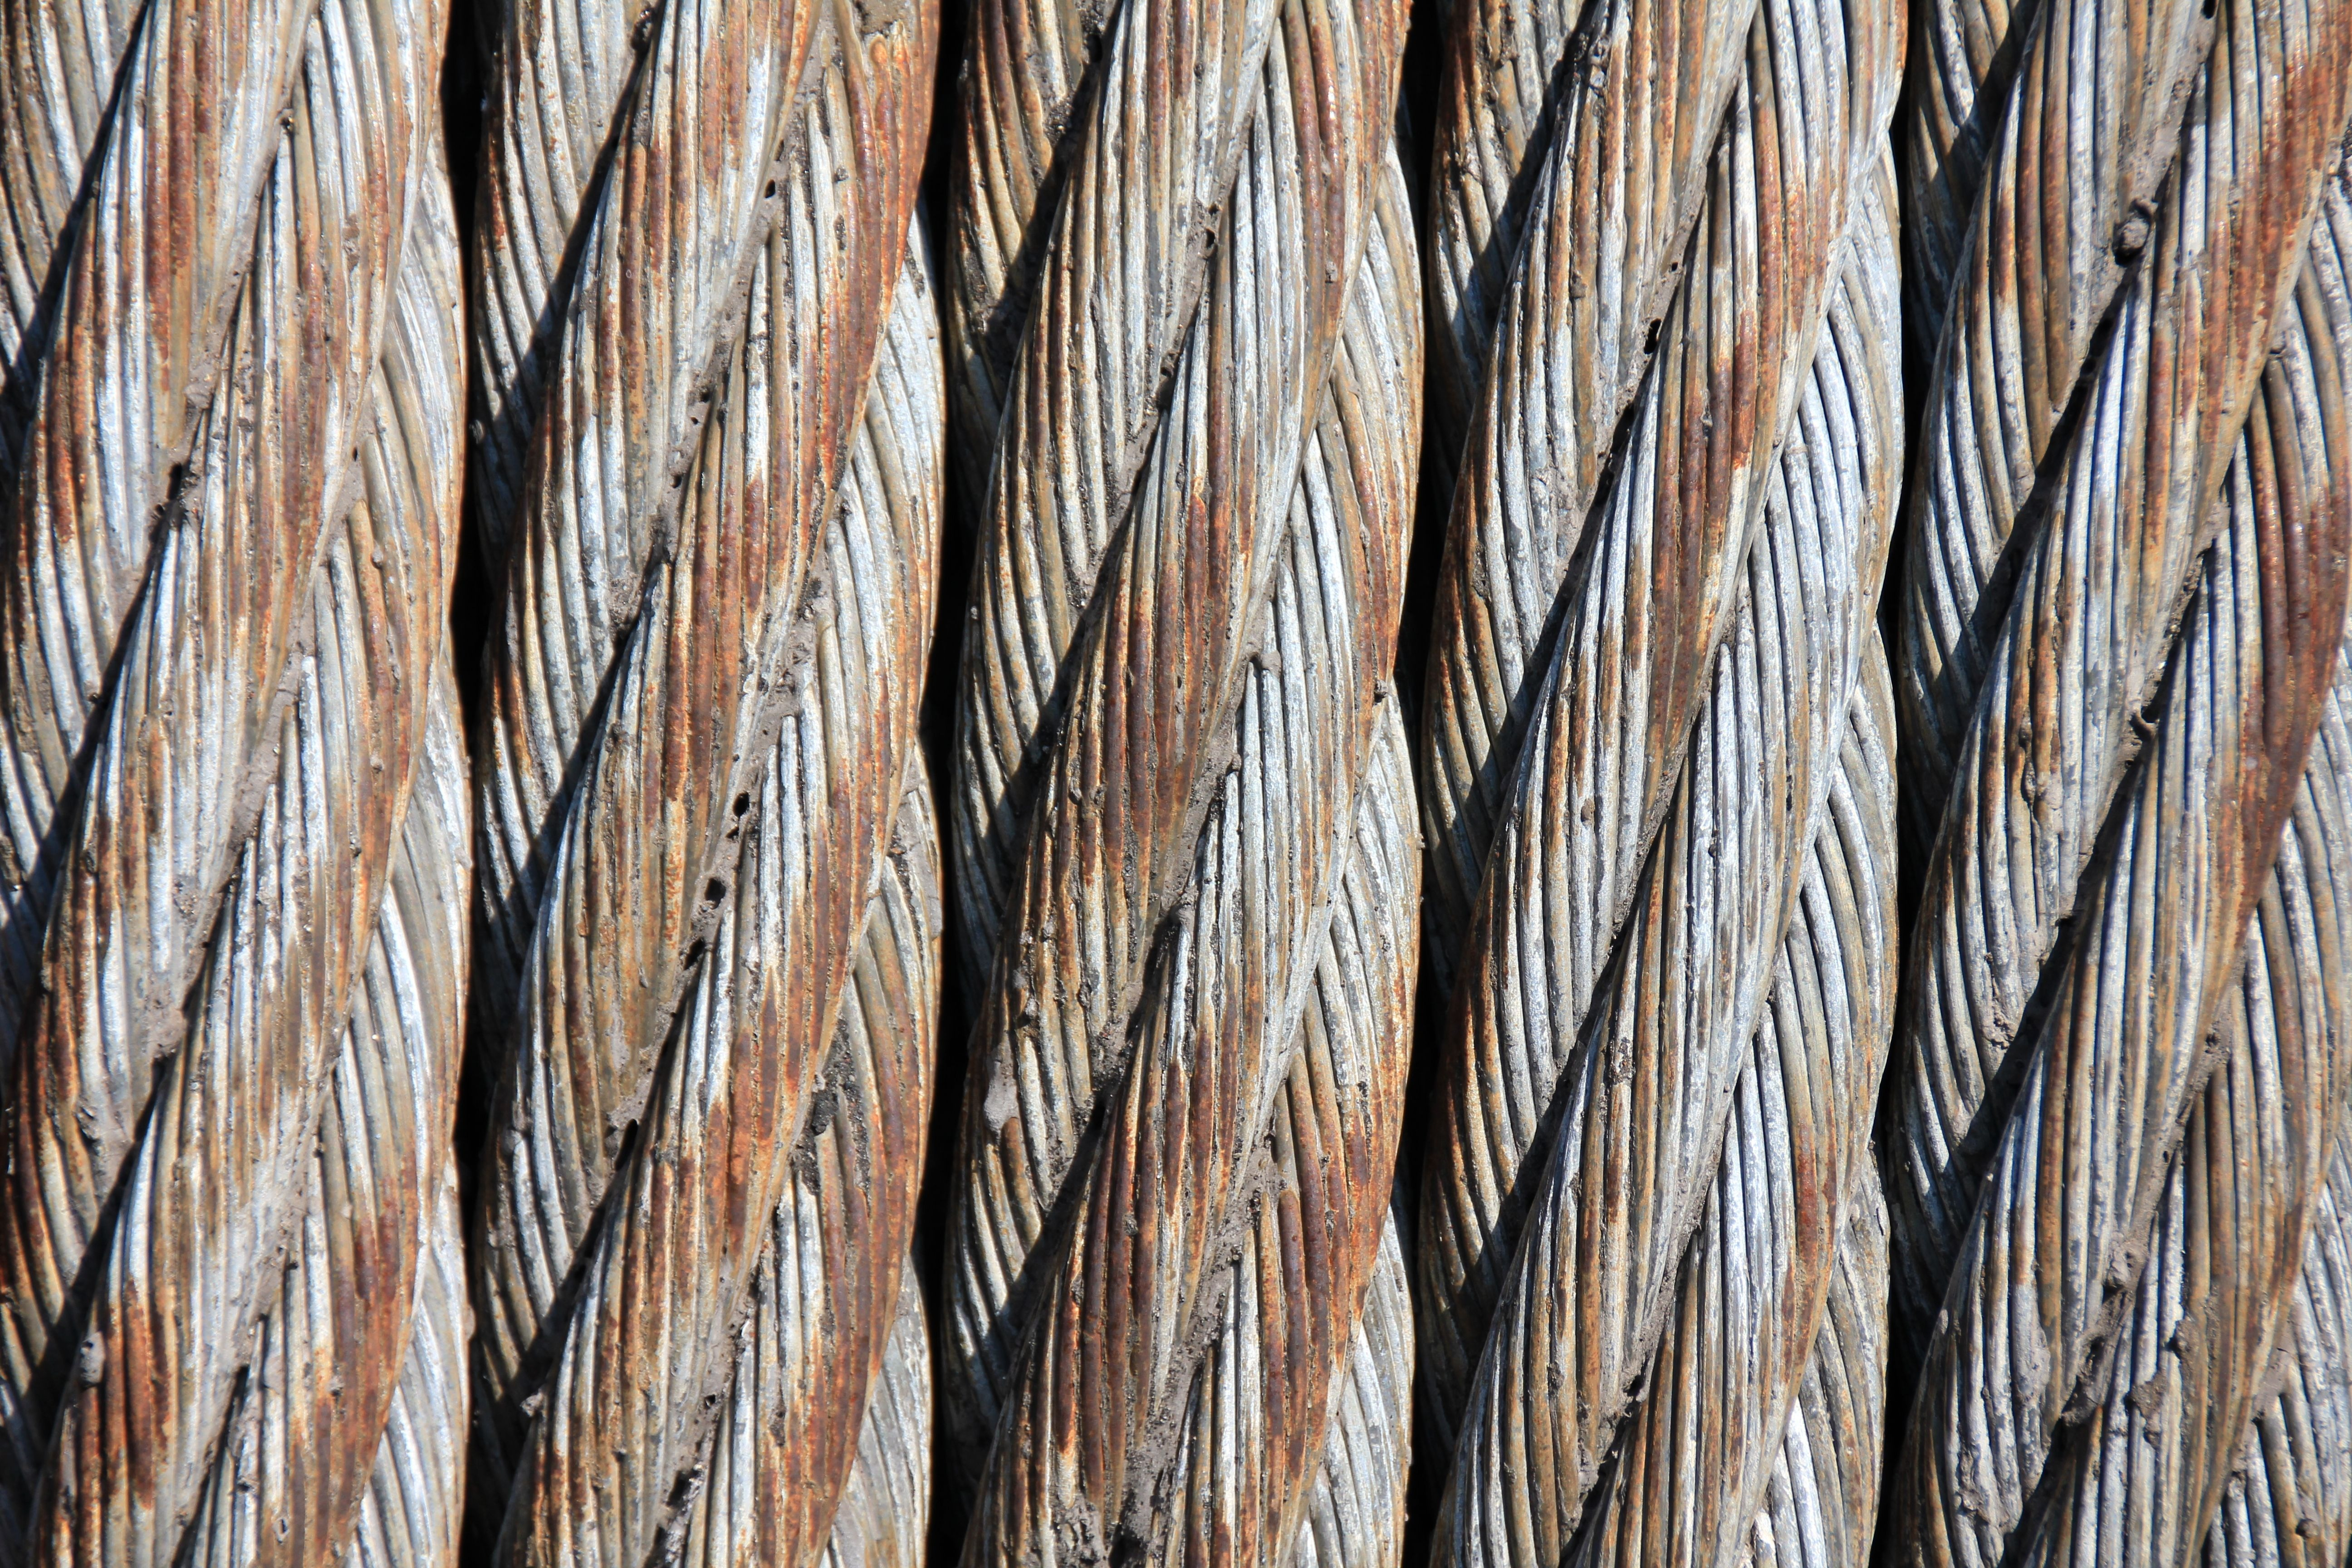 Grey 5 Braided Metal Free Stock Photo